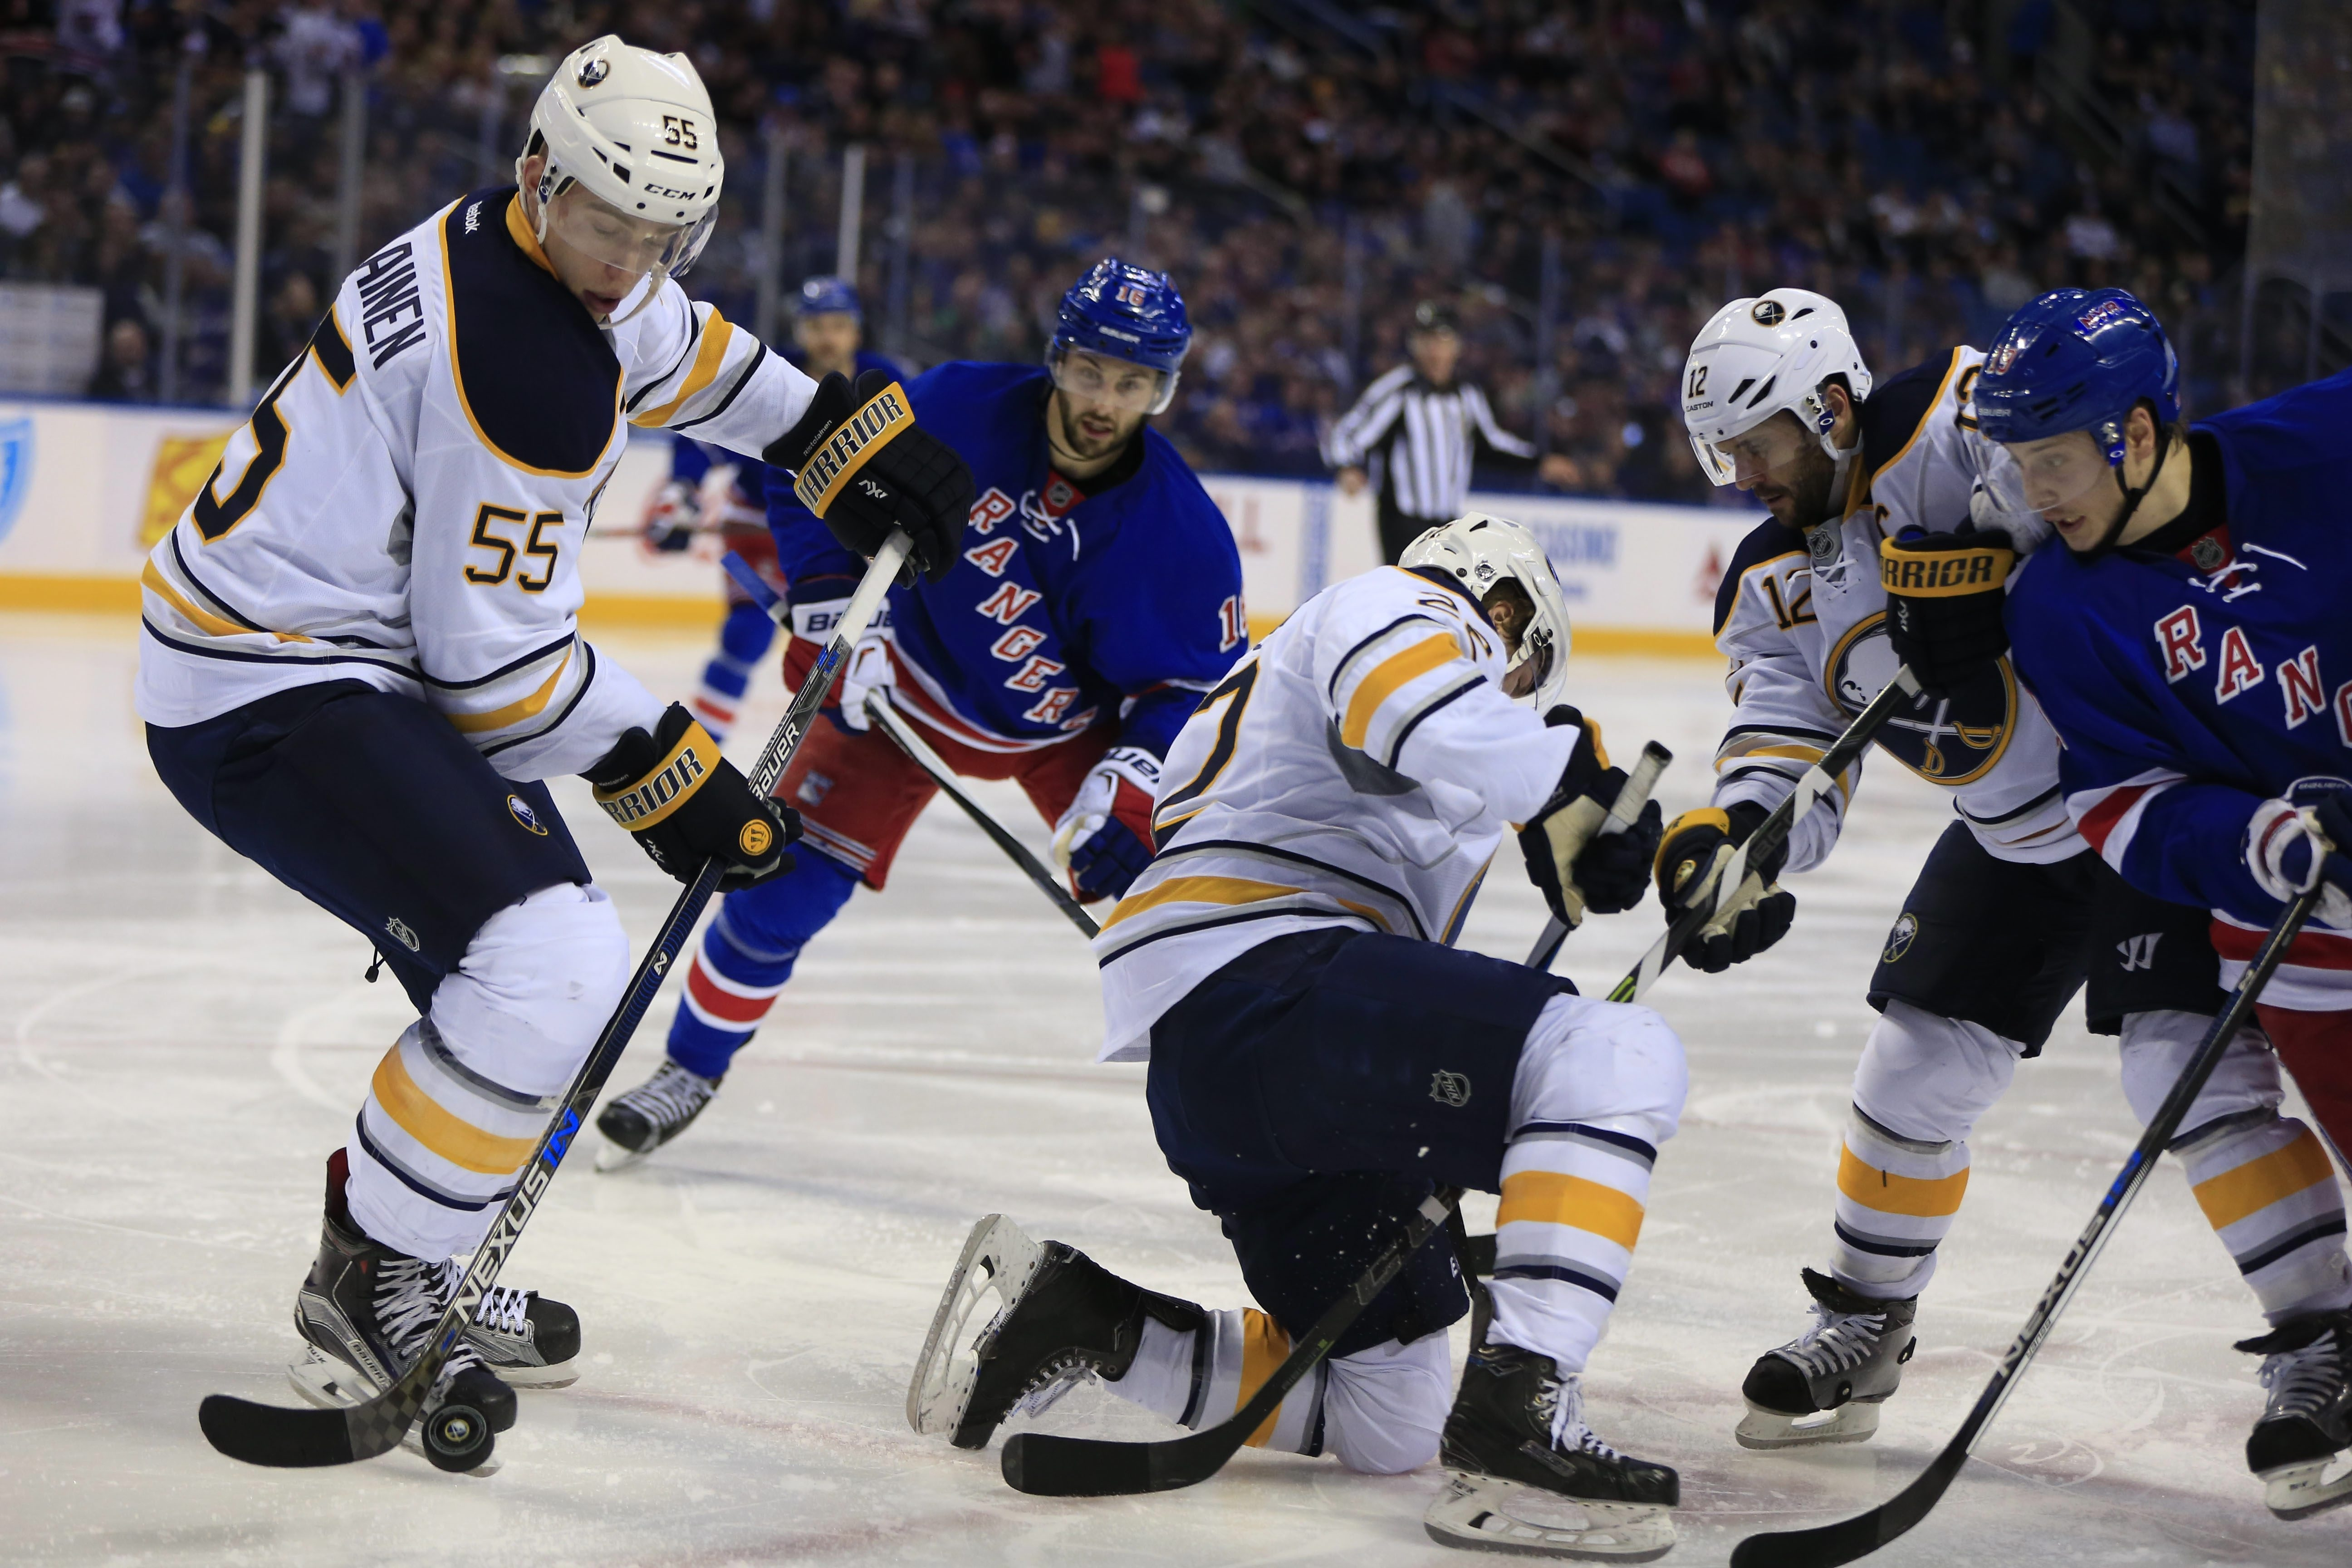 Defenseman Rasmus Ristolainen clears the puck against the New York Rangers during the second period of Tuesday's game.